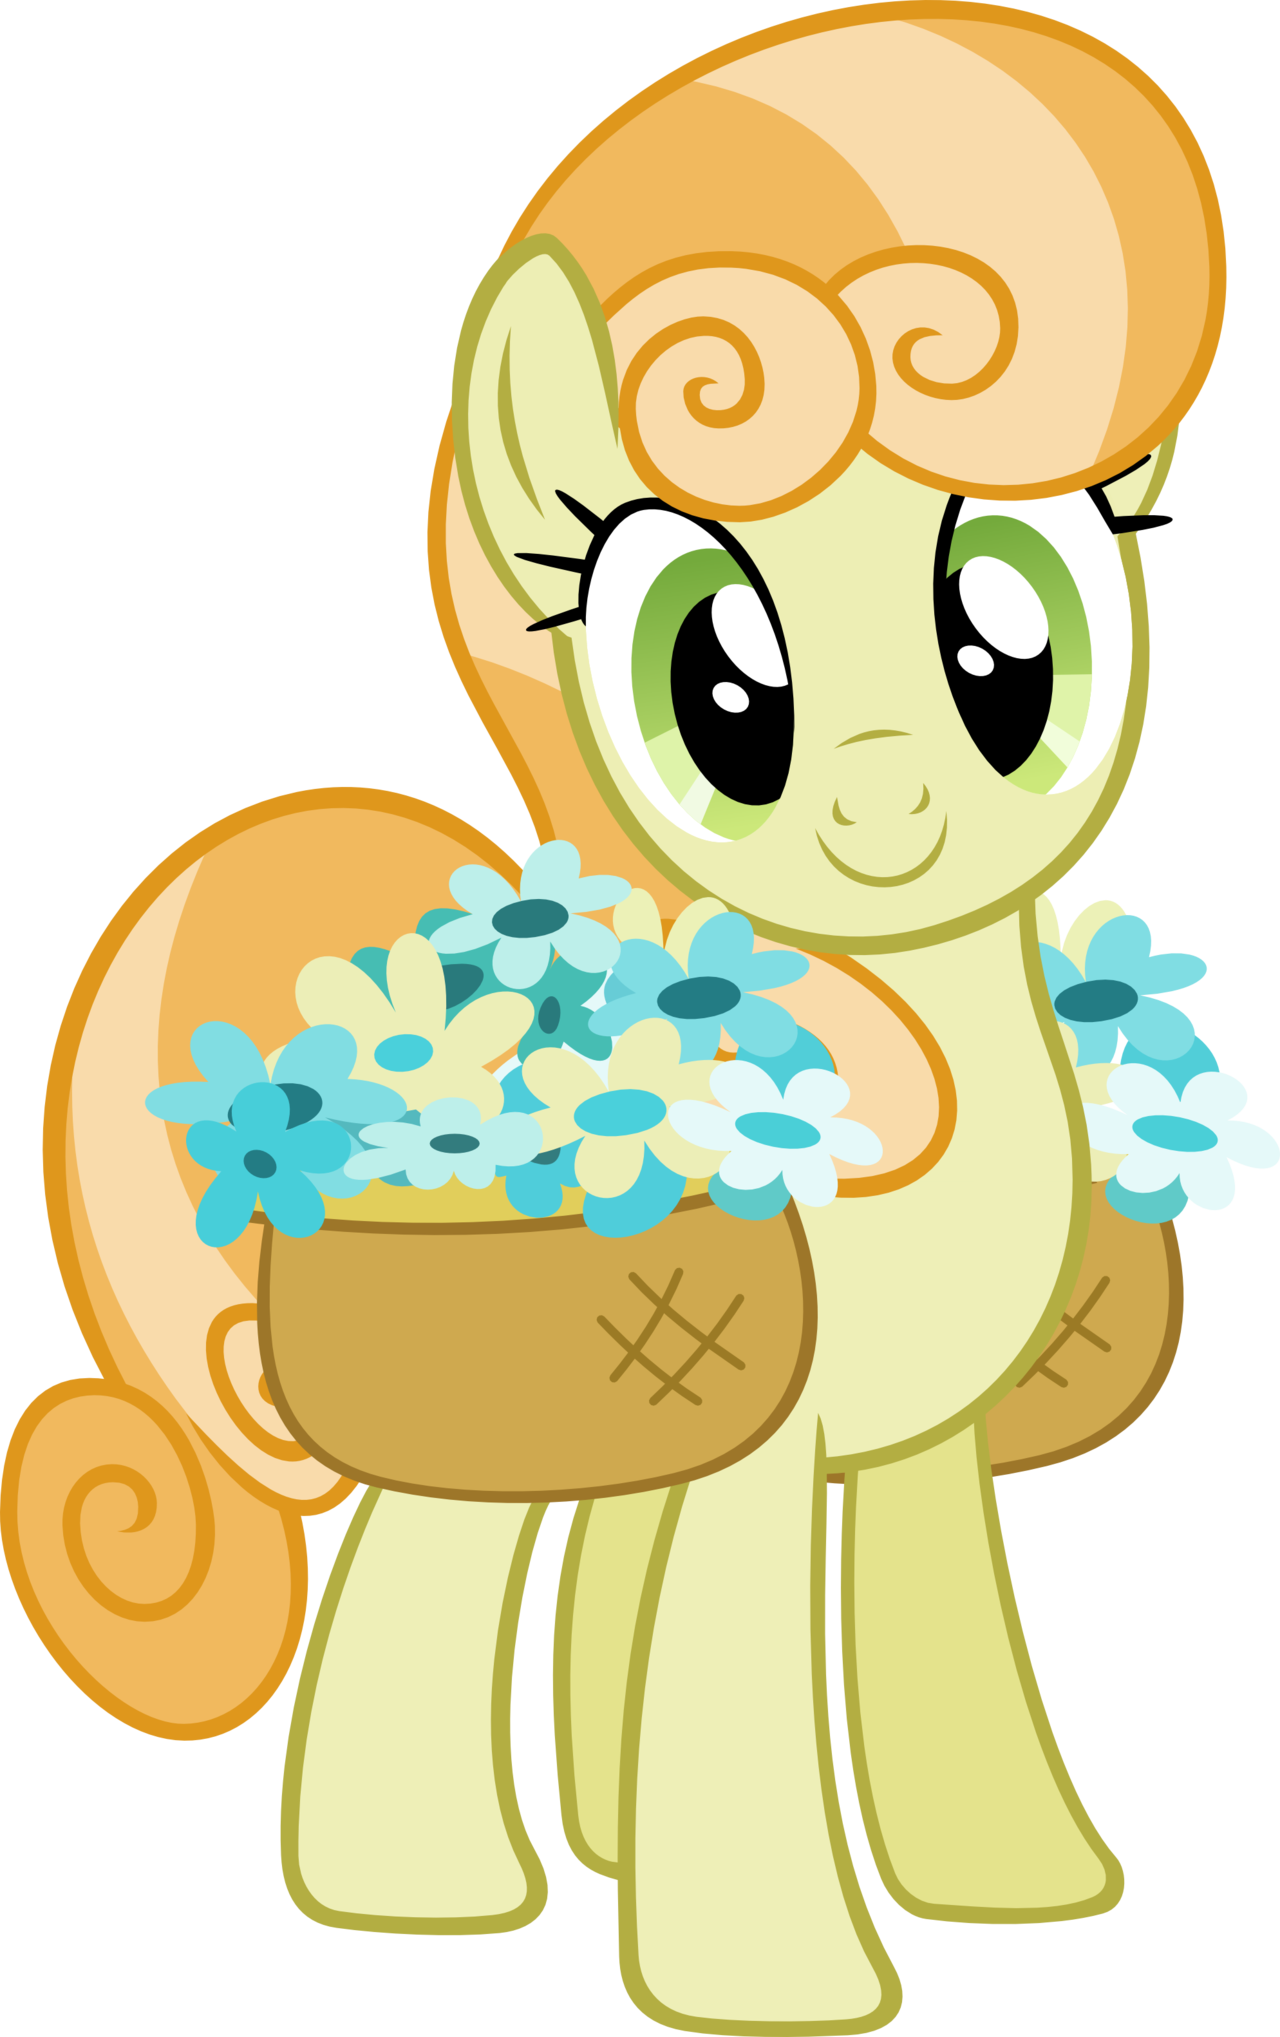 Whos the best designed pony show discussion mlp forums post 2257 0 89617200 1376039240thumbg buycottarizona